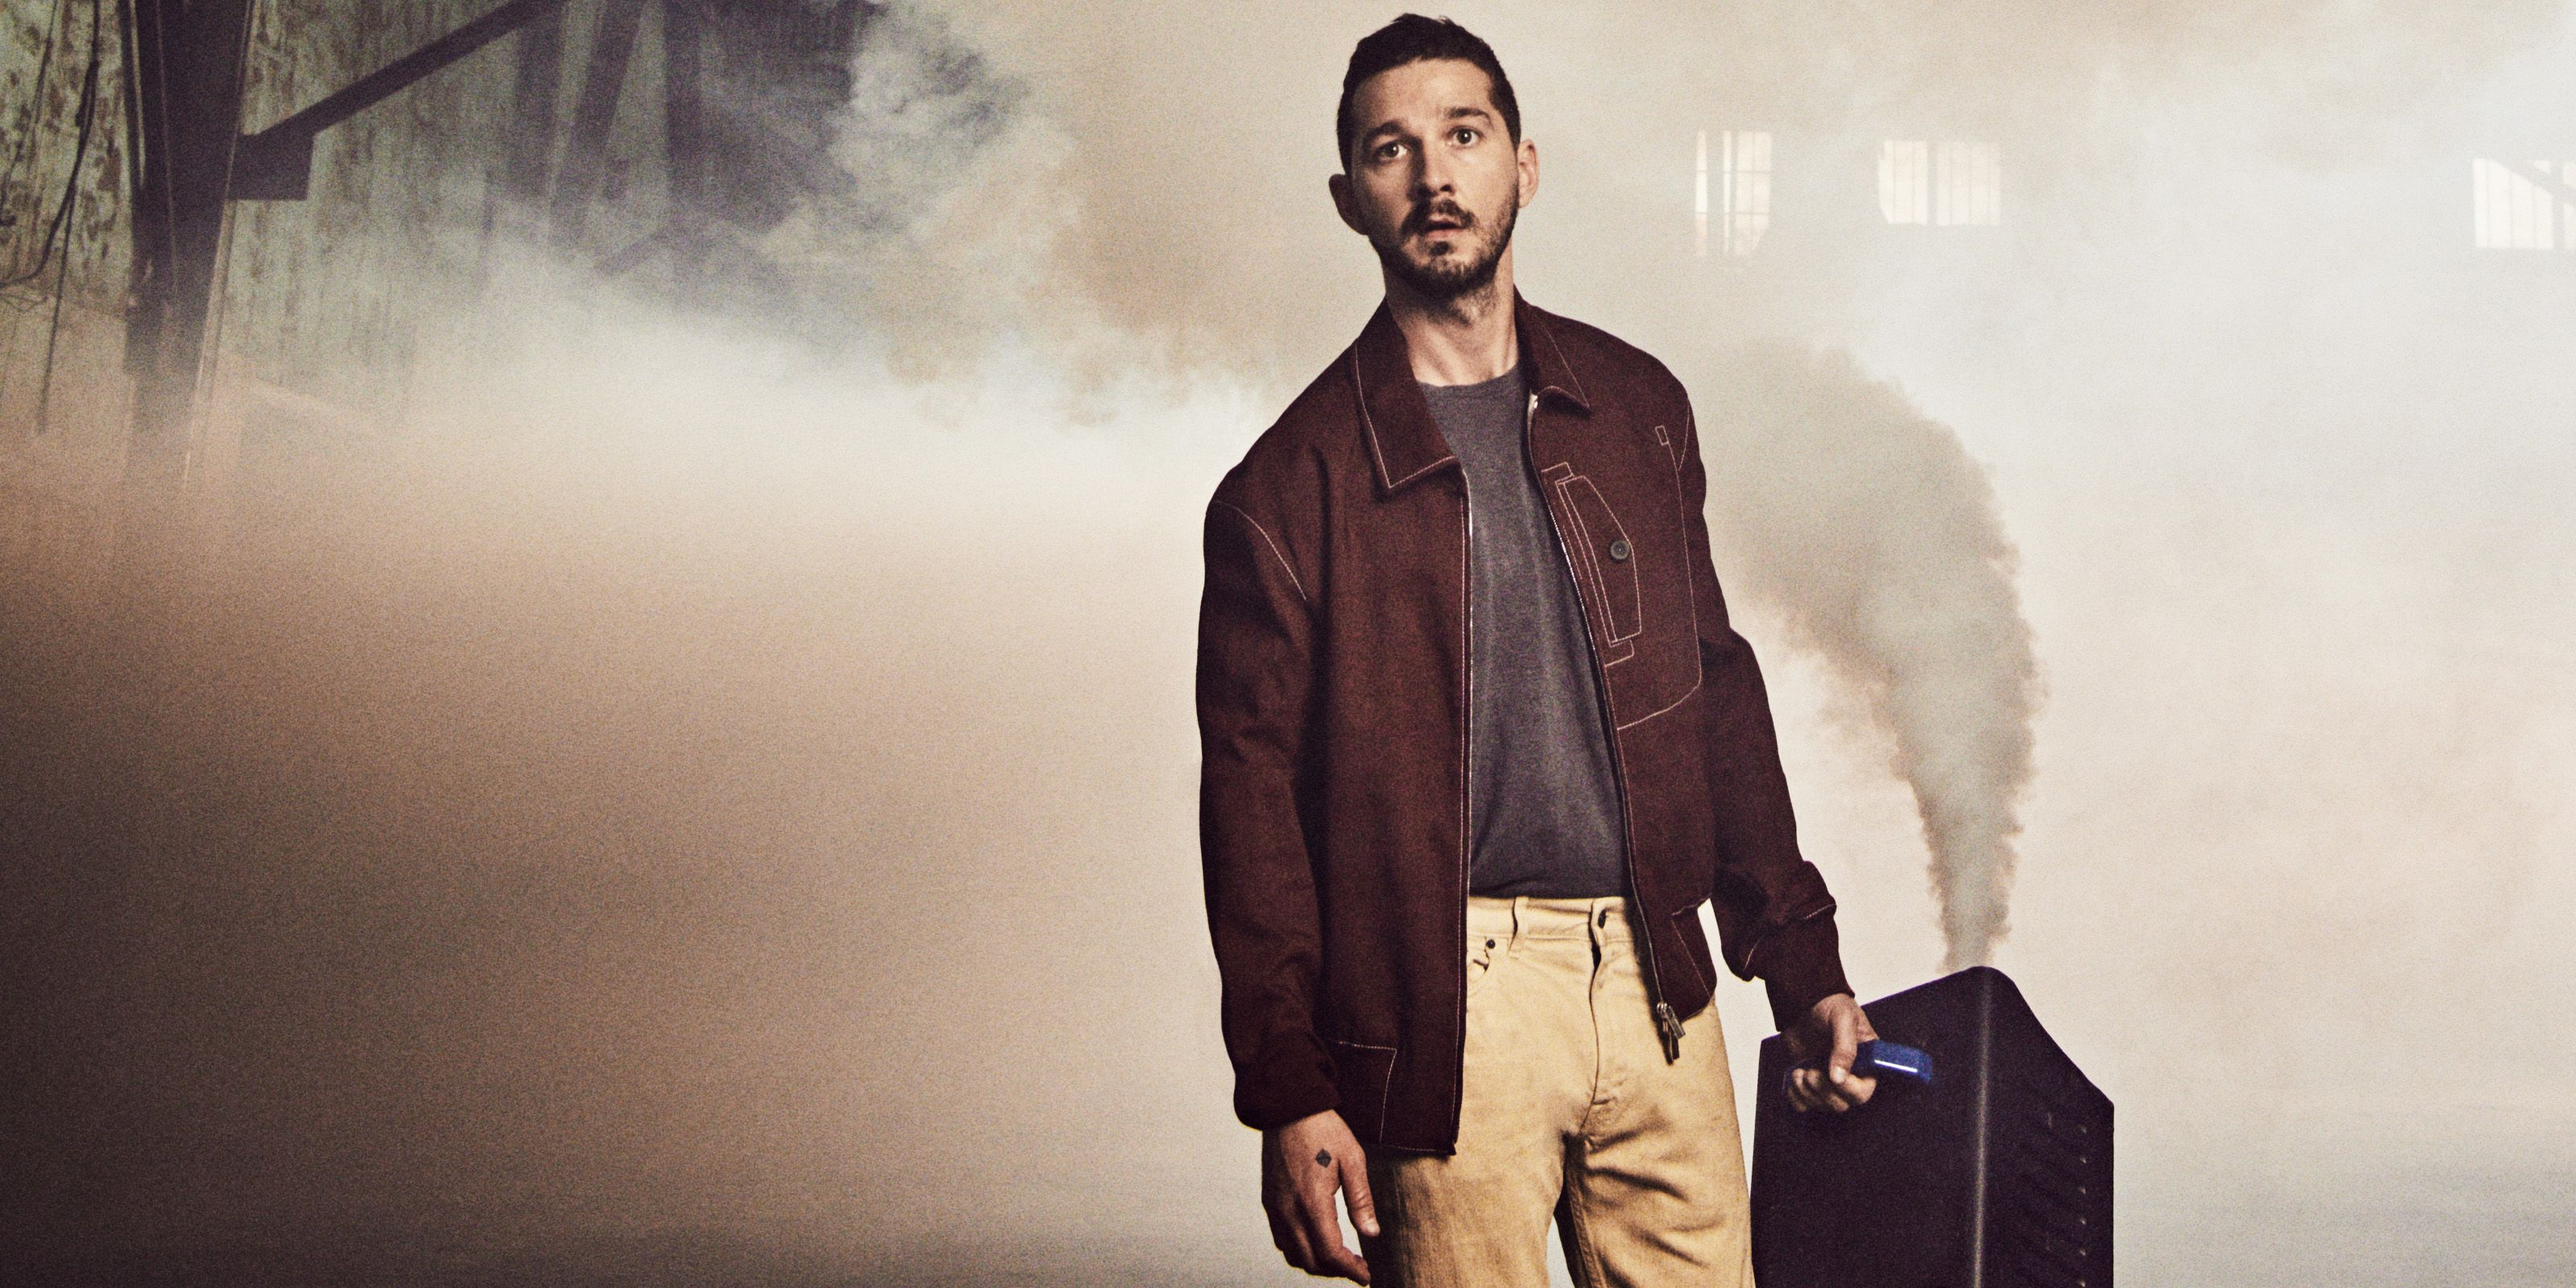 SHIA OUT TO SAVE CAREER  AND SOUL  ARREST ALCOHOLISM REHAB